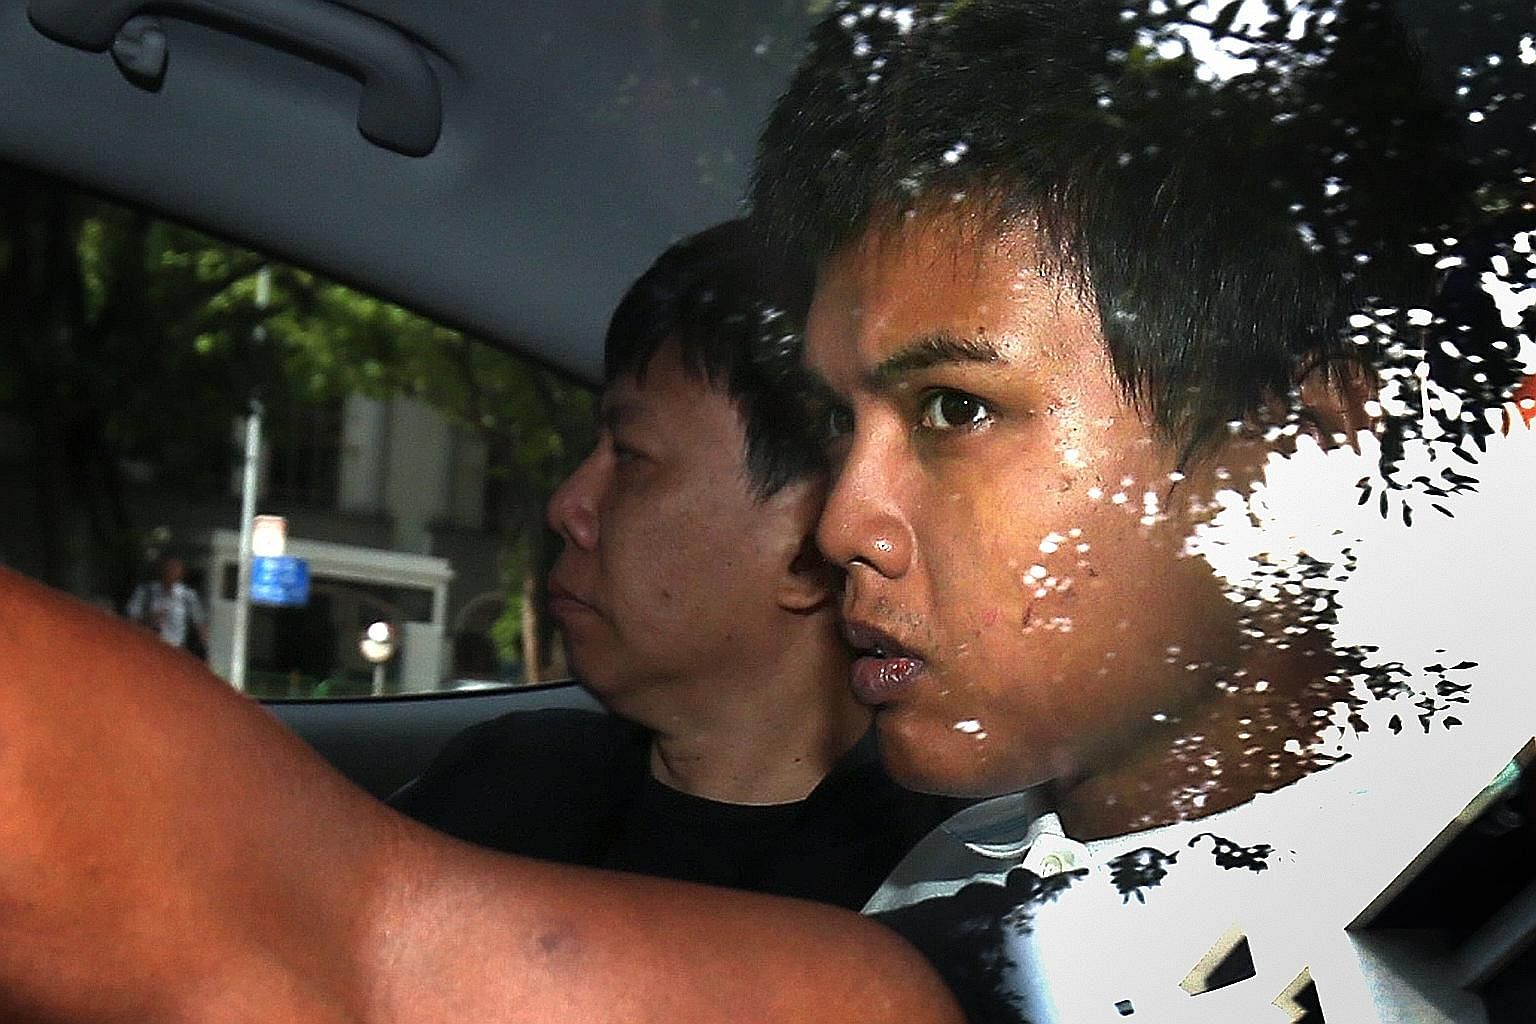 Muhammad Iskandar Sa'at faces the death penalty if convicted of firing three rounds from a revolver. His lawyer did not object to the prosecution's application for more time for a psychiatric evaluation.